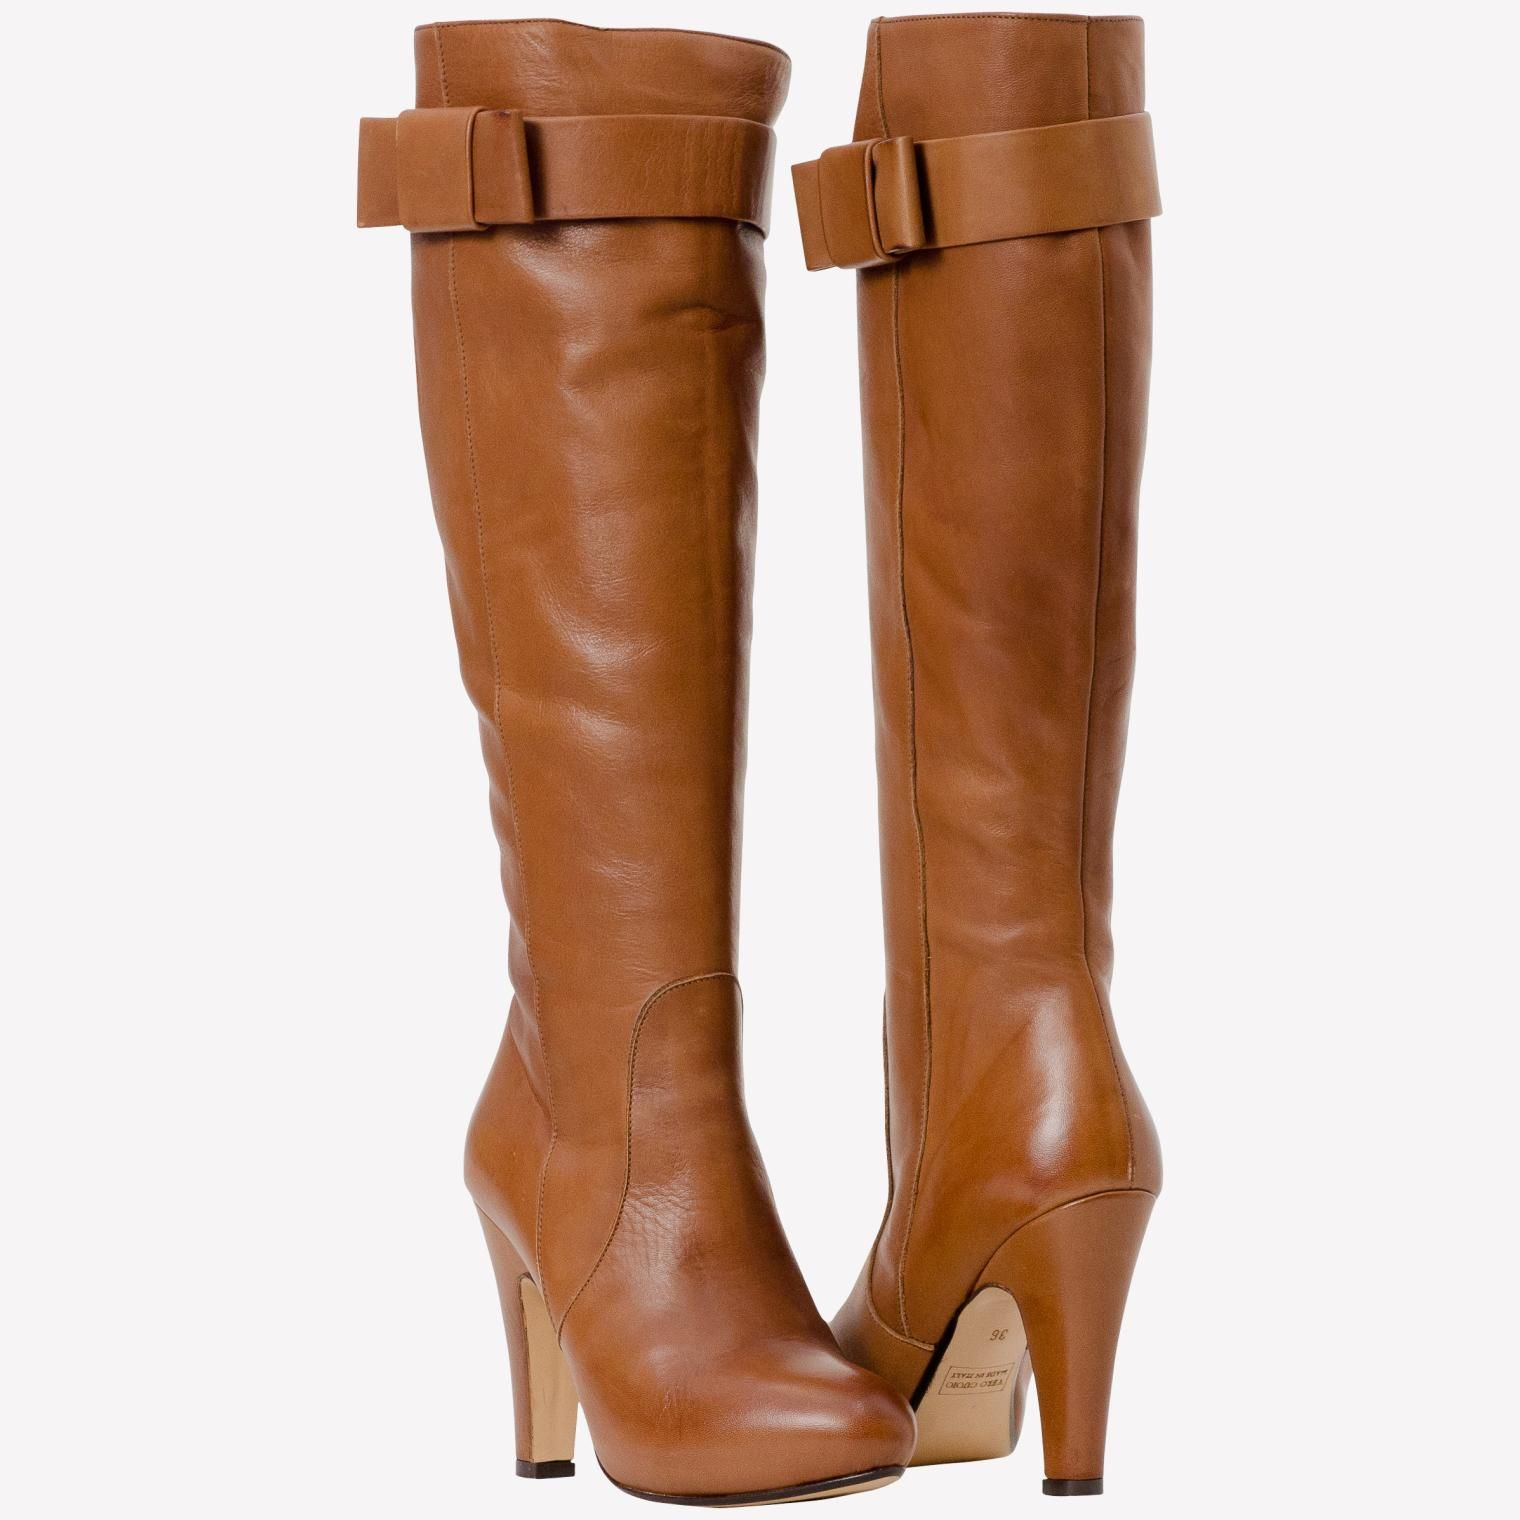 tall tan boots with heels for women | Marion Beige Tan Tall ...